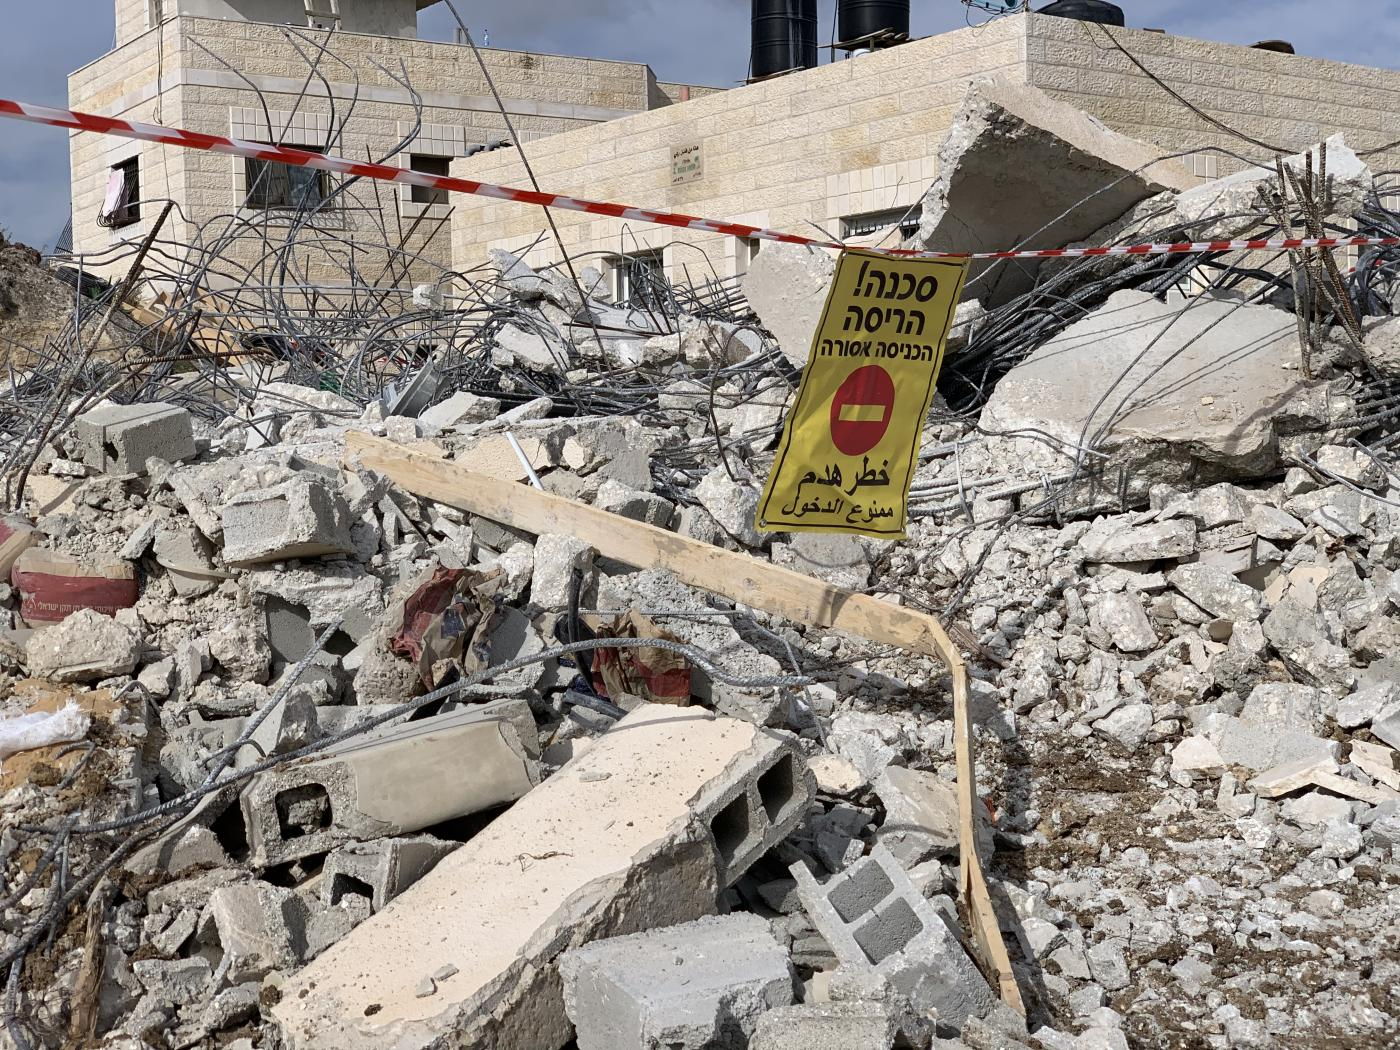 palestinians-can-now-see-their-stolen-property-in-the-database-we've-made-public-–-global-research